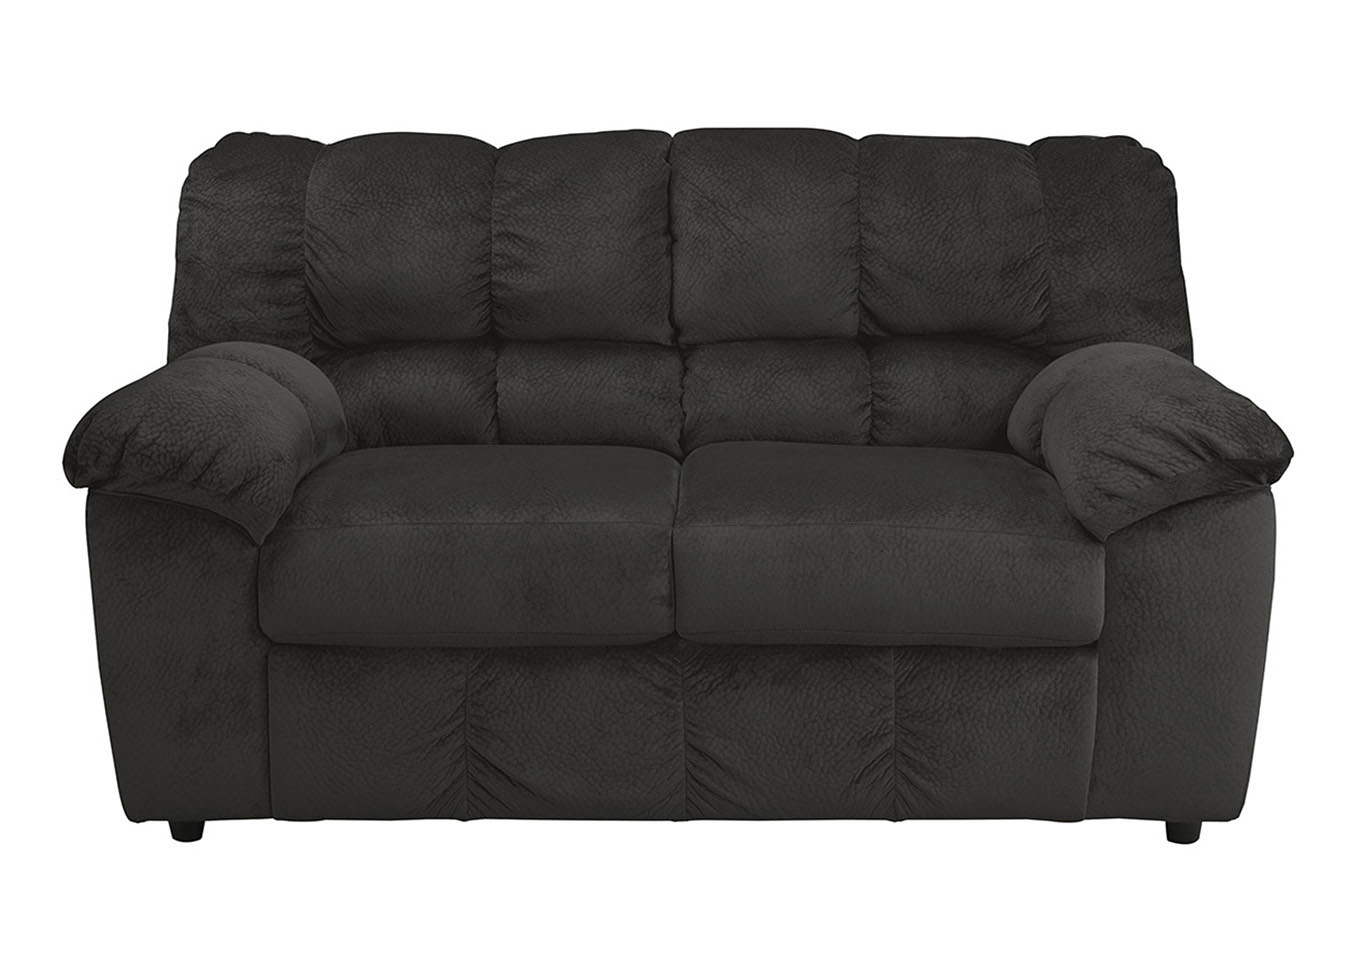 Julson Ebony Loveseat,ABF Signature Design by Ashley